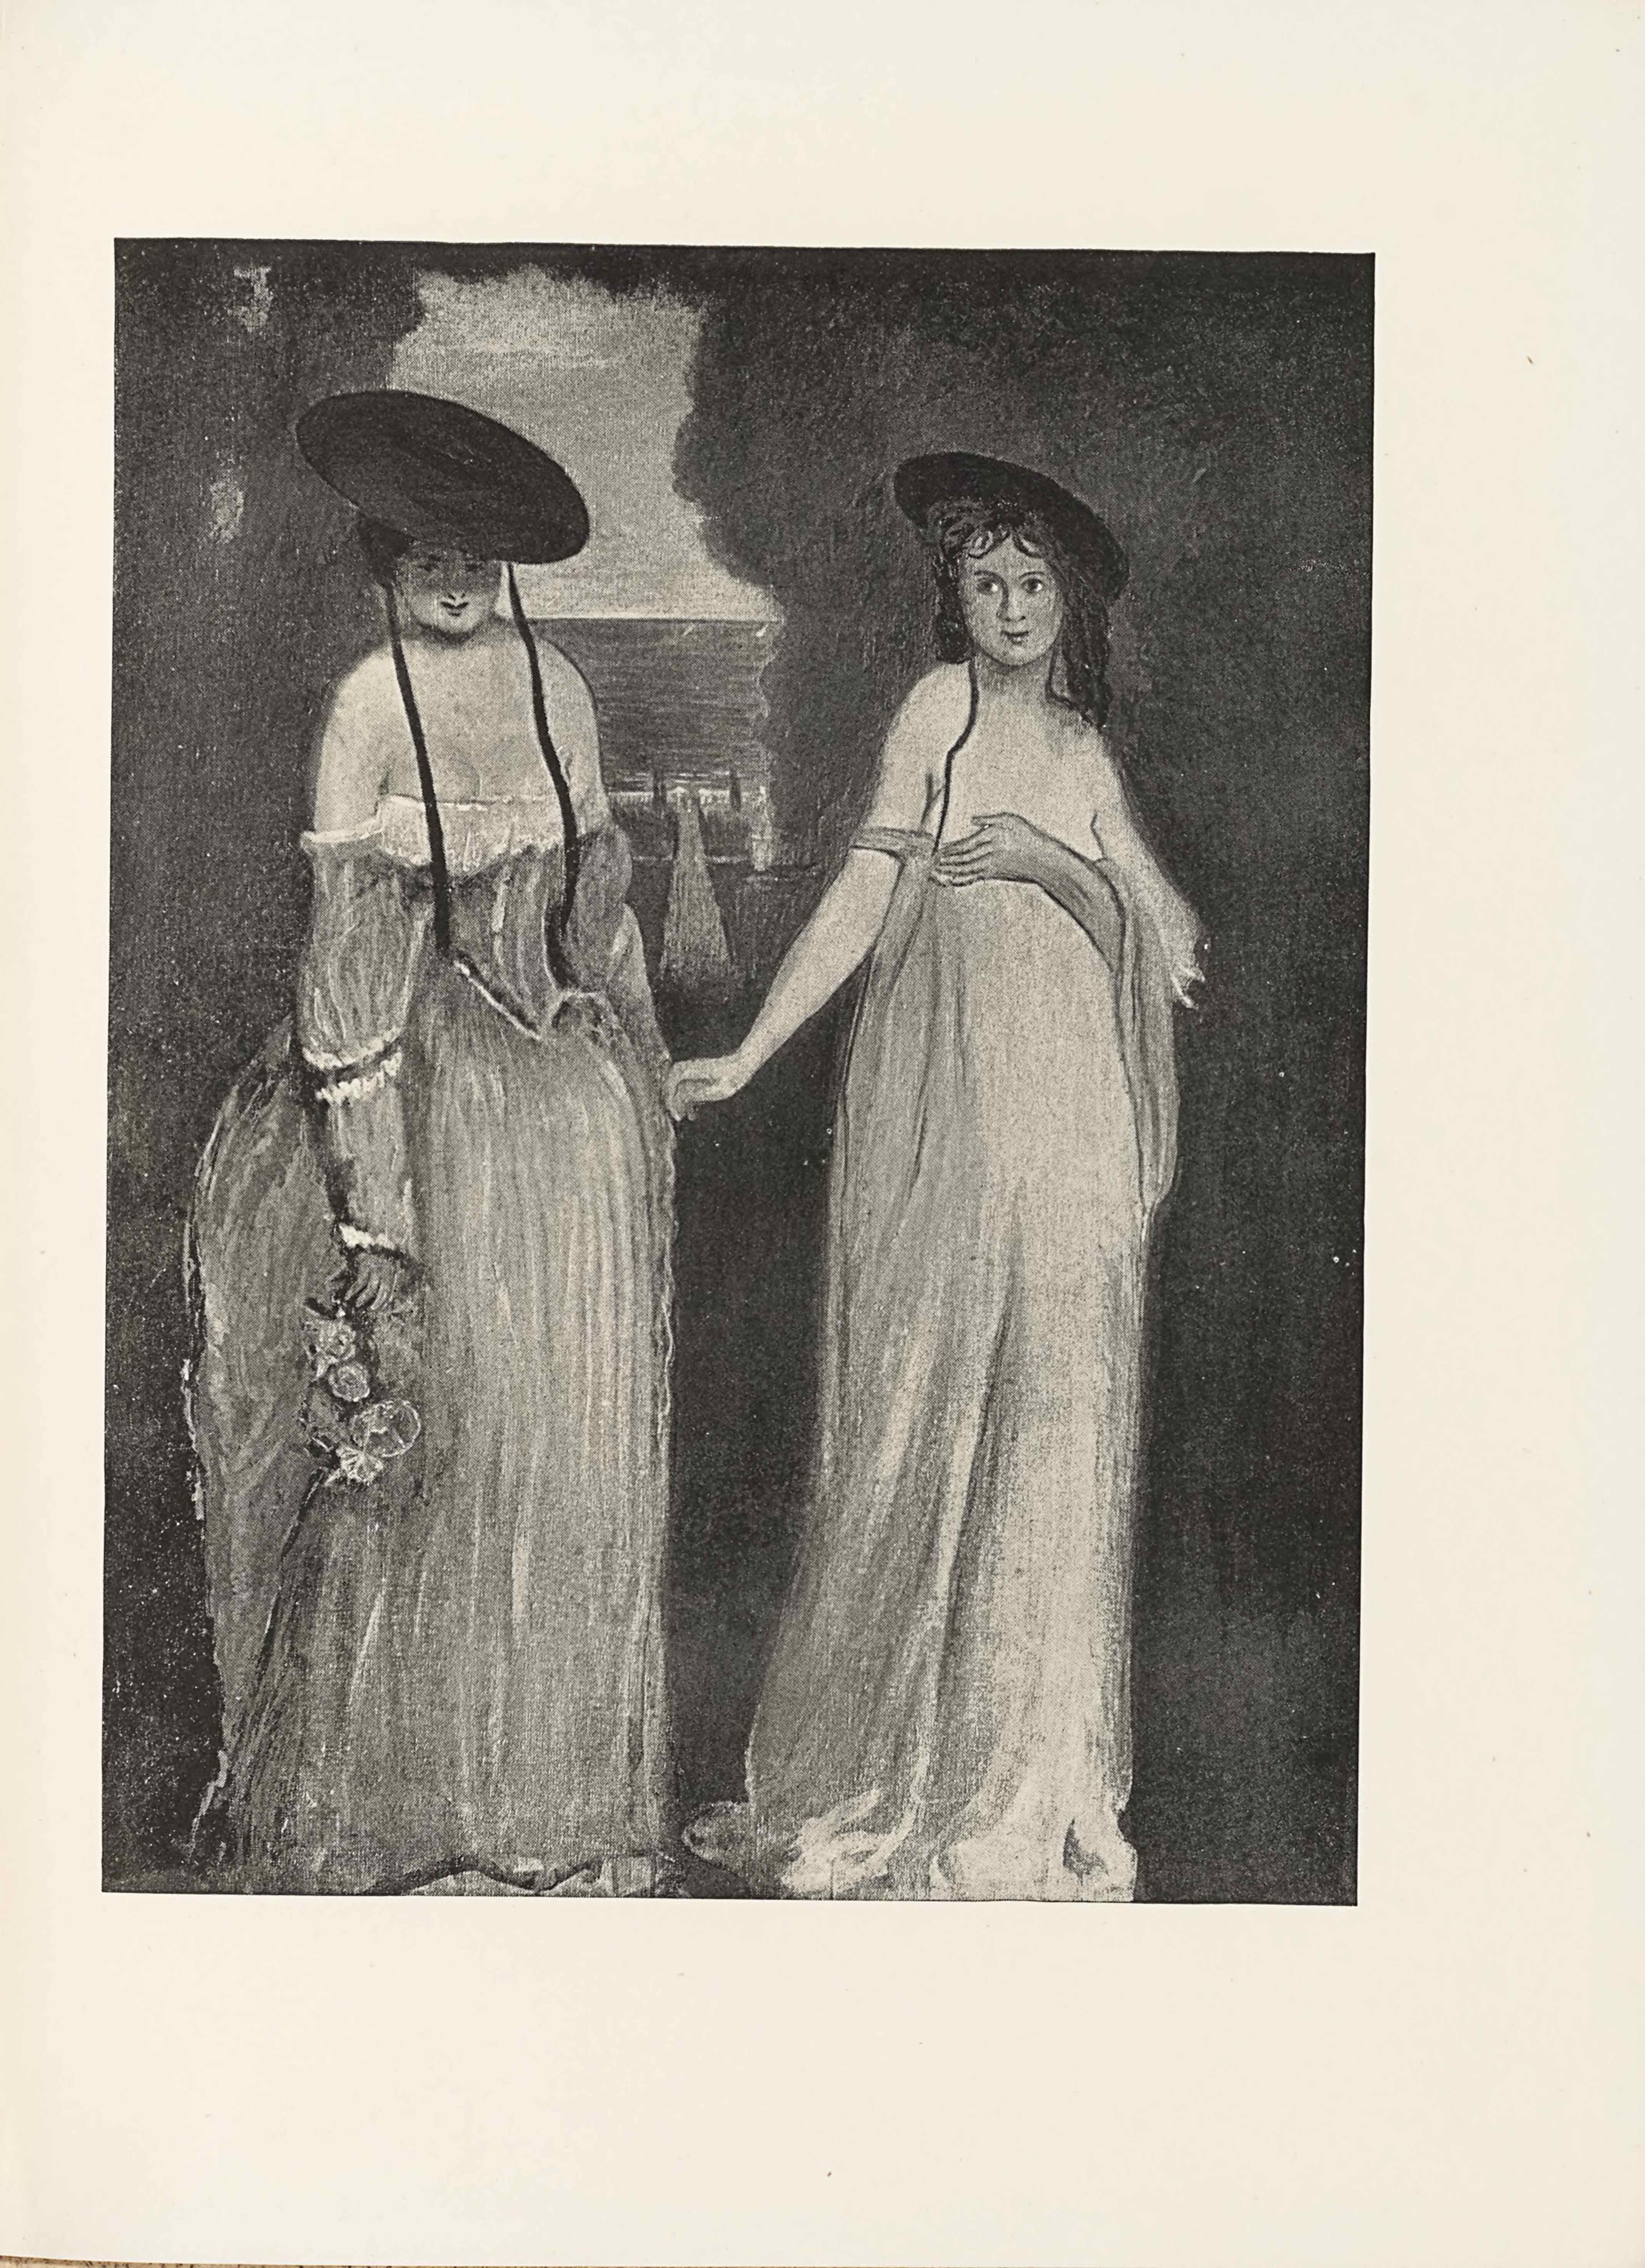 The halftone image is in portrait orientation. The image shows two young women or girls standing in an outdoor scene, taking up almost the whole height of the picture plane. The woman on the left side is standing turned slightly to the right. She is wearing a long gown that has a very low cut and off-the-shoulder style neckline. The dress flows out at the waist into a mid-size skirt. The top of the dress is a corset. The shoulderless sleeves fall down to her wrist and have a single horizontal stripe of ruffles. In her right hand is a bouquet of flowers hanging upside down. Her chest is bare, apart from the two ribbons hanging down from a wide brimmed hat she wears slanted down and casting a shadow over her face. Her hair is pulled back underneath the hat. She has slightly upturned lips. Her eyes stare straight ahead at the viewer. Her left arm is pulled behind her slightly. The other woman, who is on the right side, is standing turned slightly to the right side of the page as well. She is wearing a very loose dress, one that is low-cut and appears to fall below her breasts. There is one off-the-shoulder sleeve wrapped around her right arm, but none appears on her left arm. Her right hand is extended out to the side and seems to reach towards the other woman's left hand. Her left arm is bent up at a ninety degree angle and is holding the dress at the front and covering her breasts. A bit of excess material is draped over top of this left arm and hangs down her front. She also has on a brimmed hat, a slightly smaller one than the other woman's. The hat has two ribbons falling down from it and the right ribbon falls over her chest while the other is tucked behind her left shoulder. Her slightly wavy hair falls down behind her shoulders. In the middle of the two women and backgrounded is a sailboat. This boat floats in the water that extends out to the skyline in the background. There is only a small opening to see the boat and the water behind it though, for the rest o